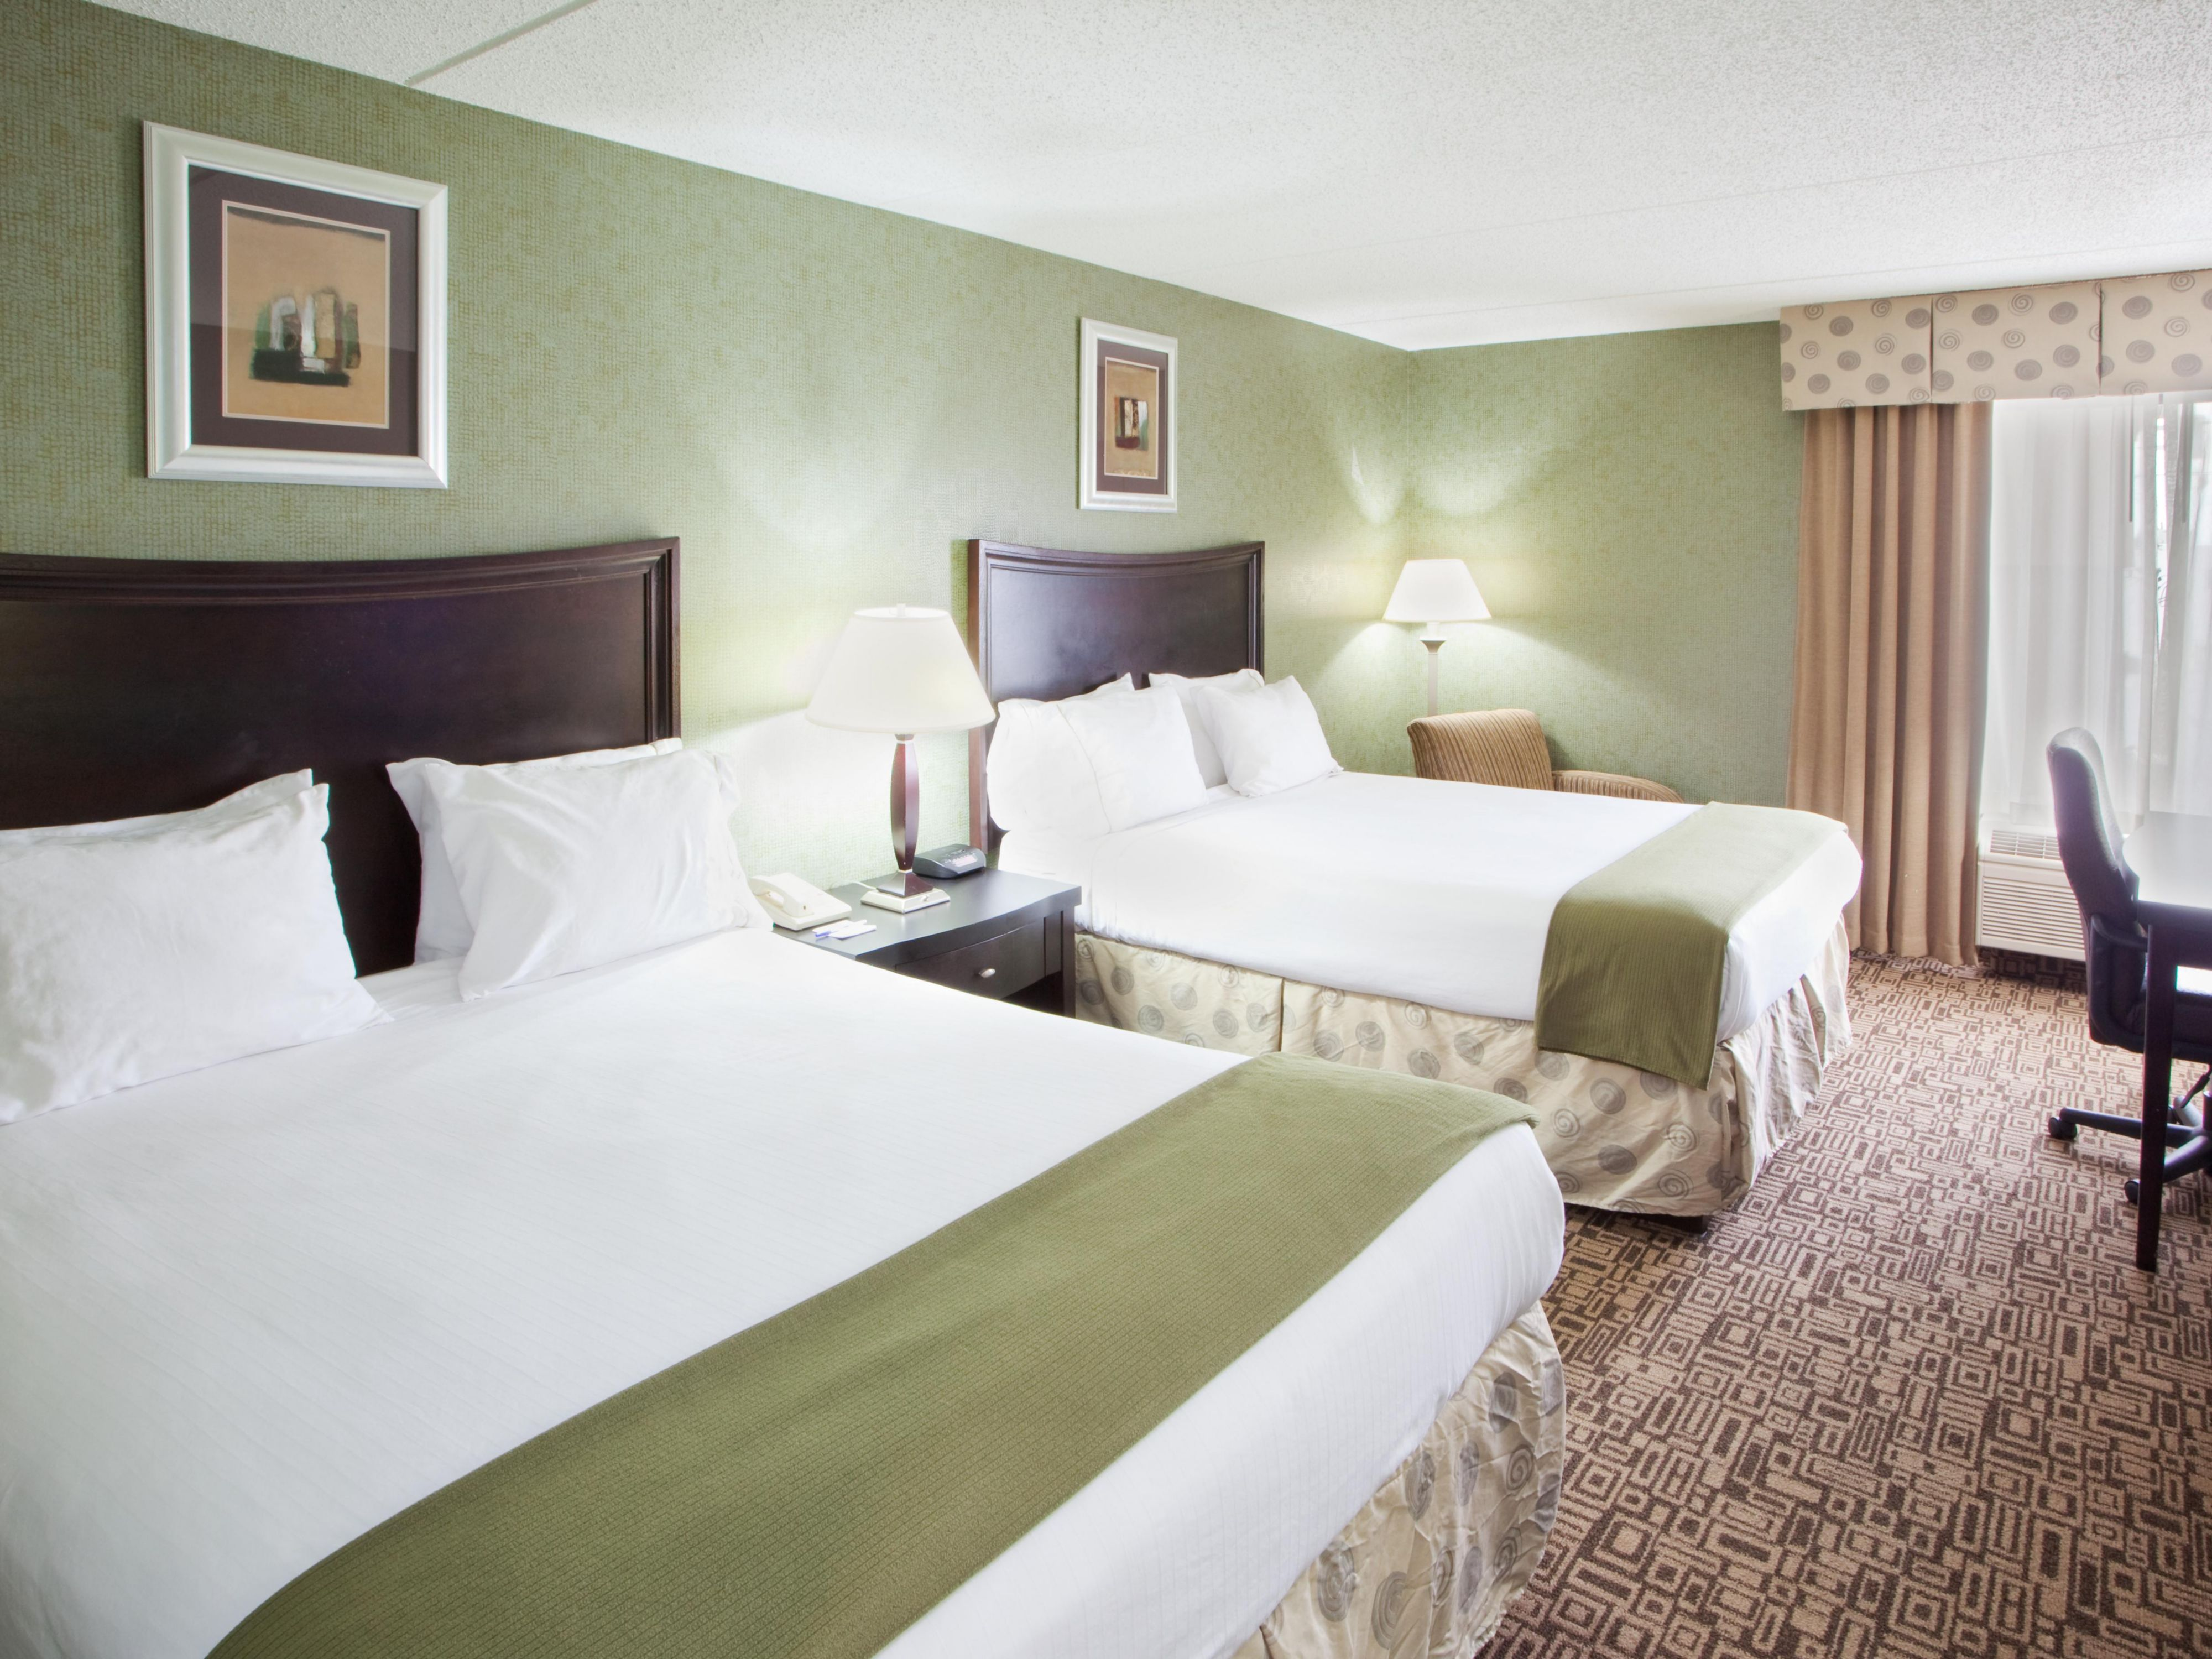 Enjoy our flat screens, free wifi, and comfortable 2 queen beds!